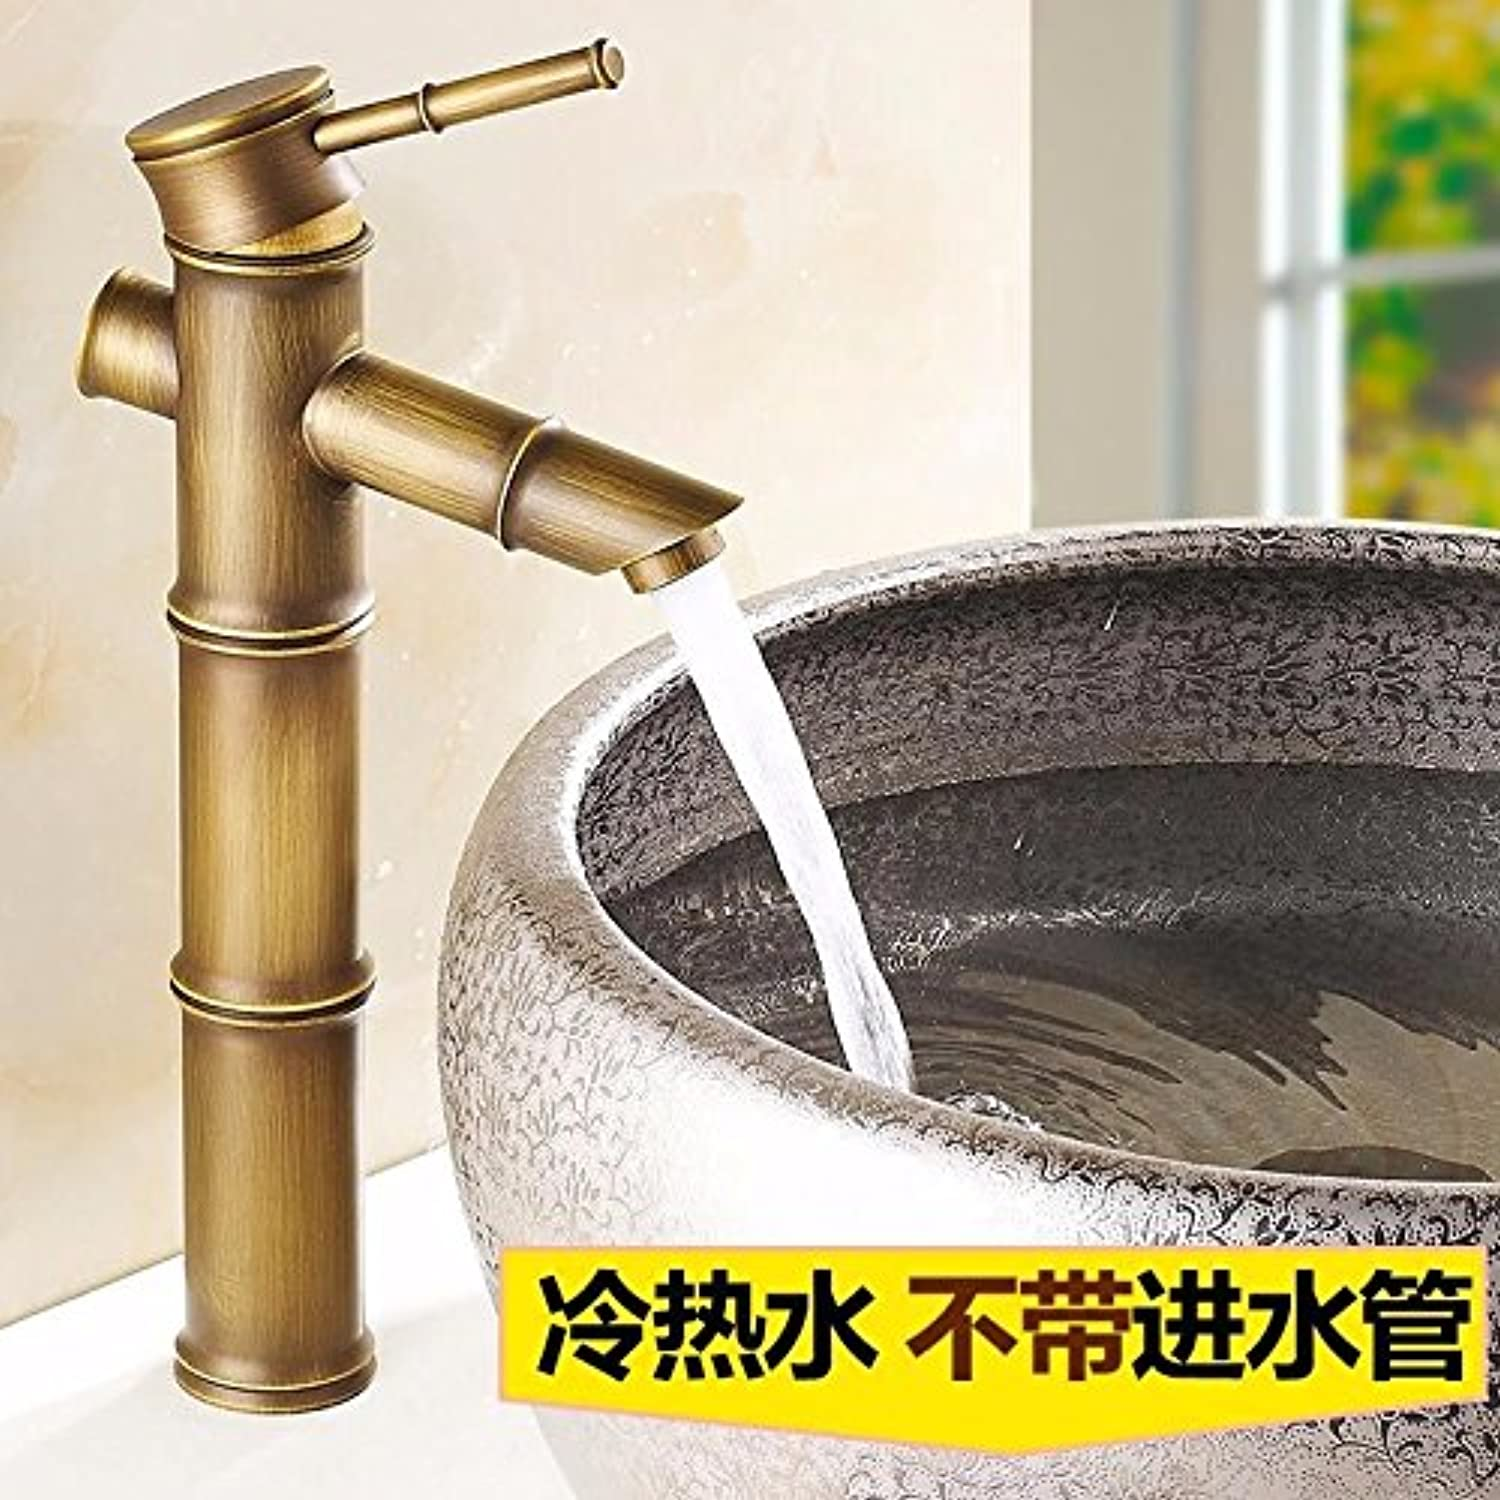 ETERNAL QUALITY Bathroom Sink Basin Tap Brass Mixer Tap Washroom Mixer Faucet Water faucet basin single hole single handle mixer bathroom hot and cold G Kitchen Sink Taps